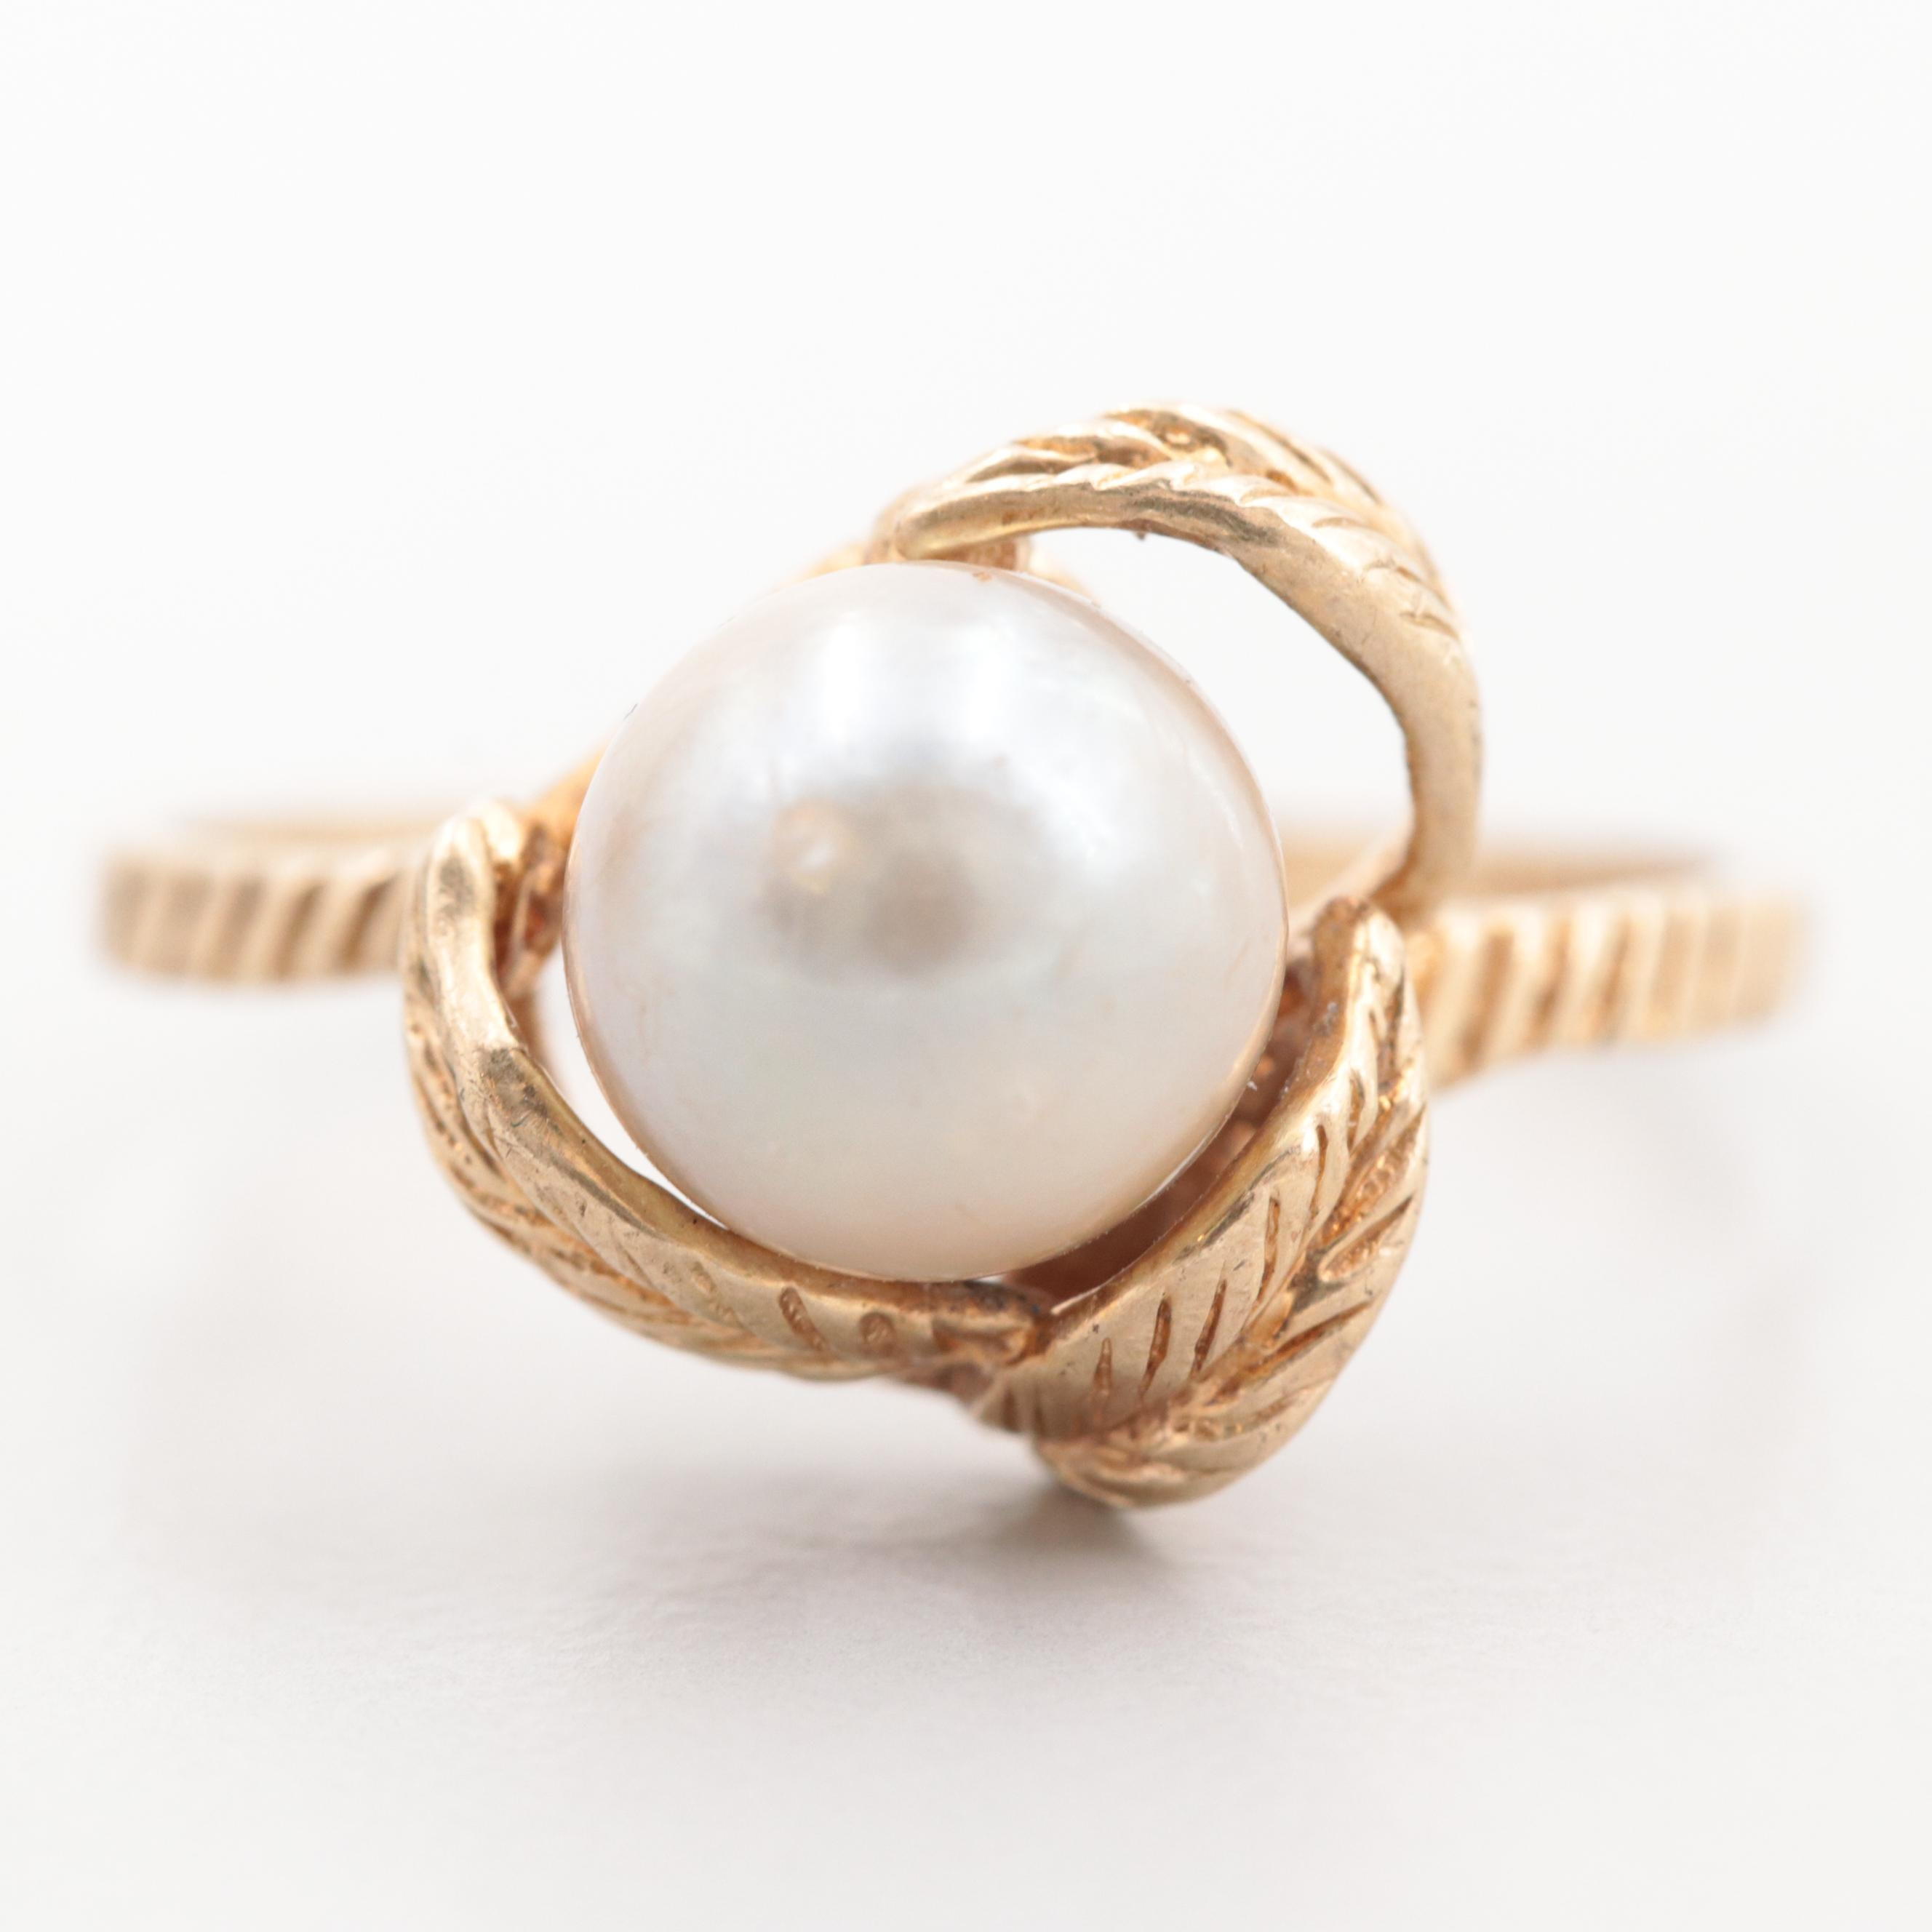 10K Yellow Gold Cultured Pearl Ring with Foliate Motif